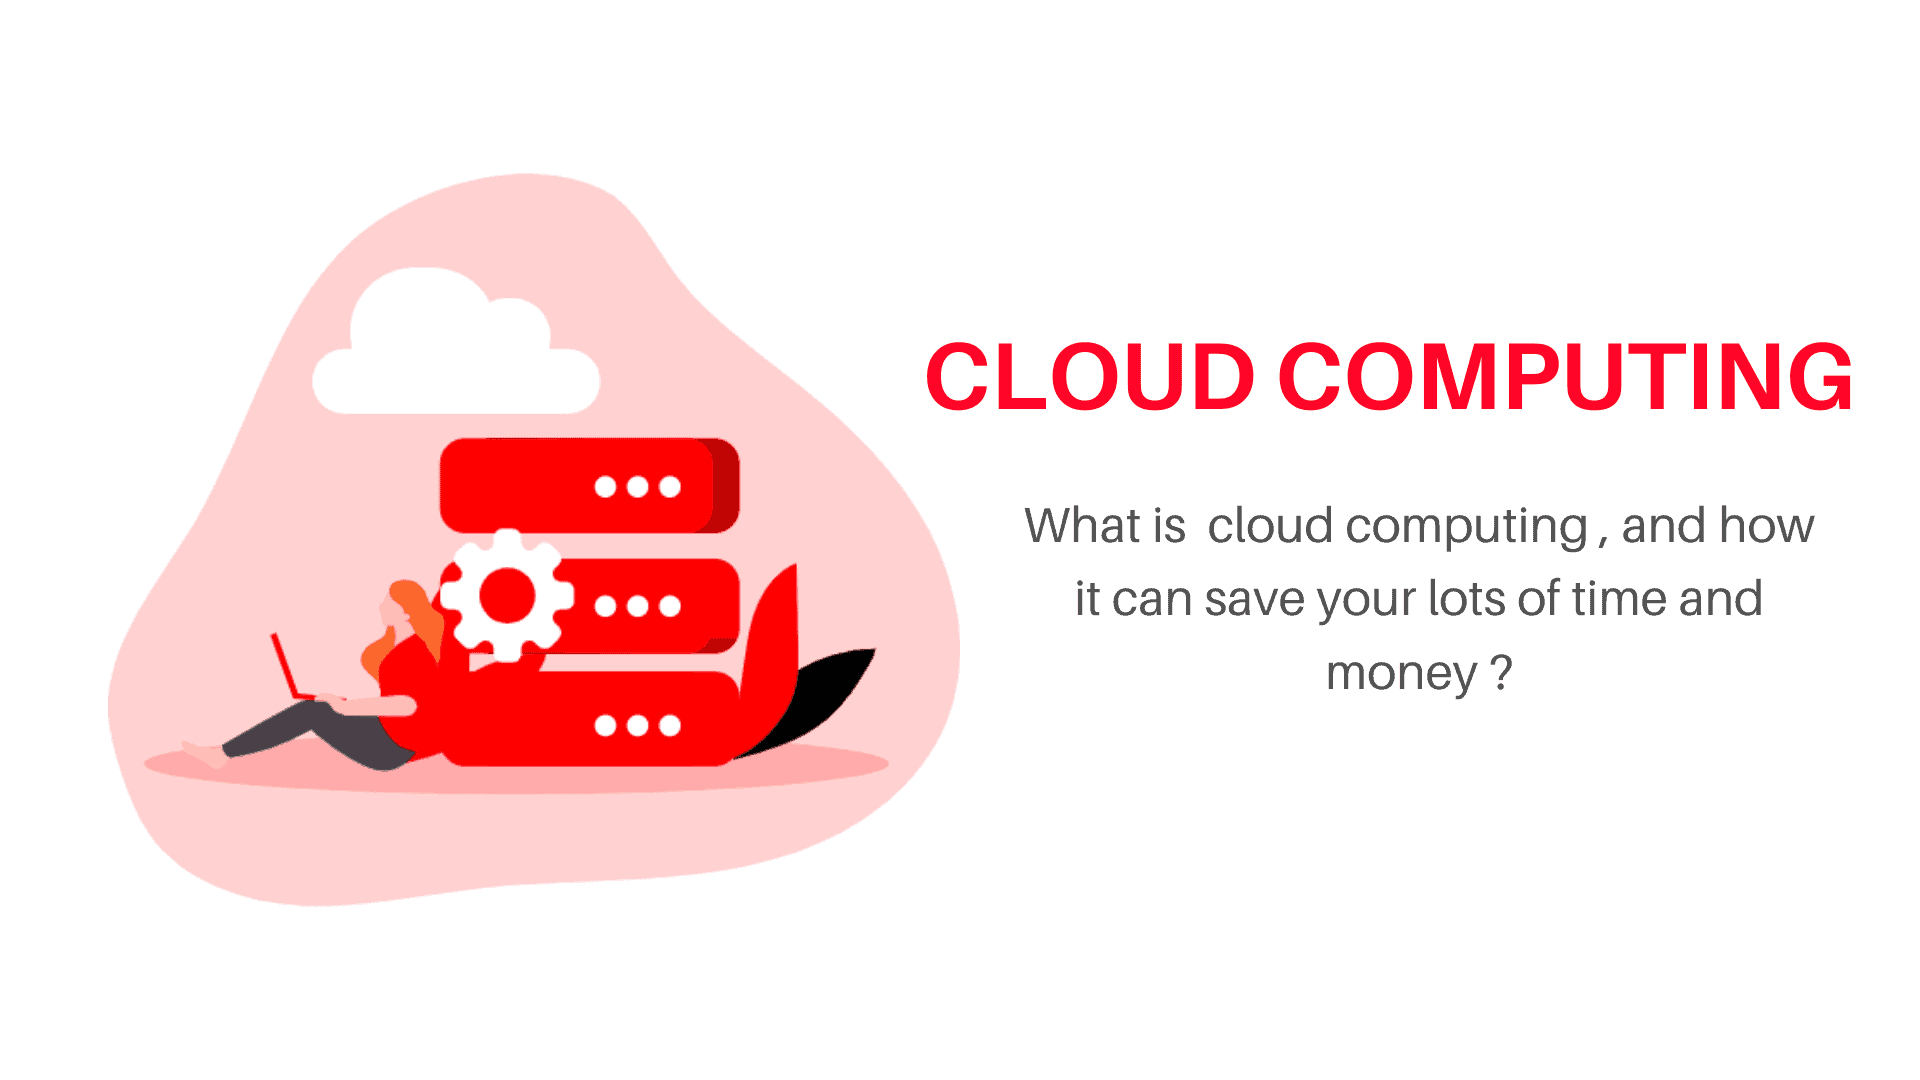 What is cloud computing easy explanation by buggy programmer, Benefits of cloud computing, why cloud computing is so important, why cloud computing matters in 2021